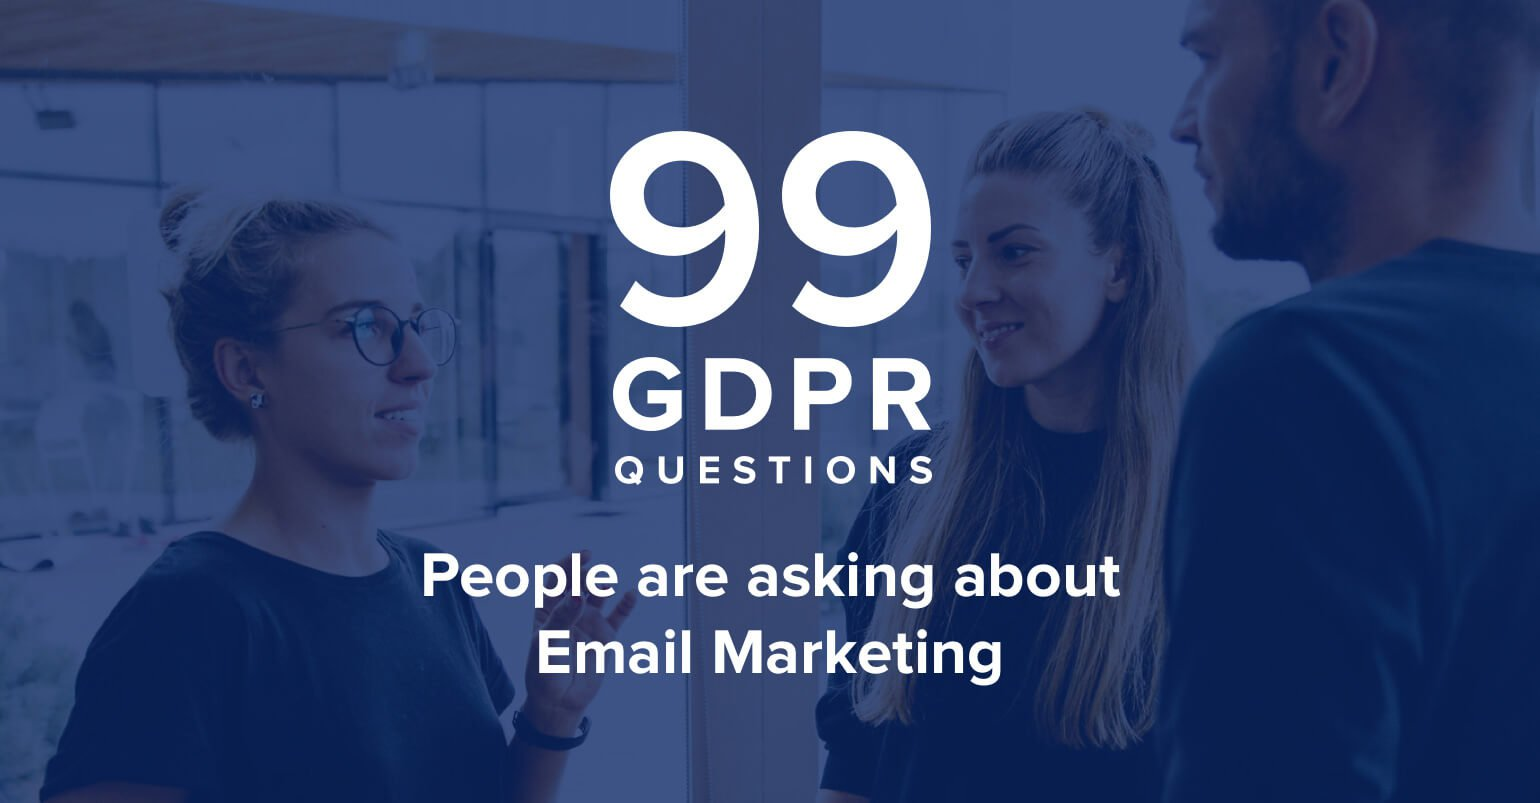 99 GDPR questions people are asking about Email Marketing